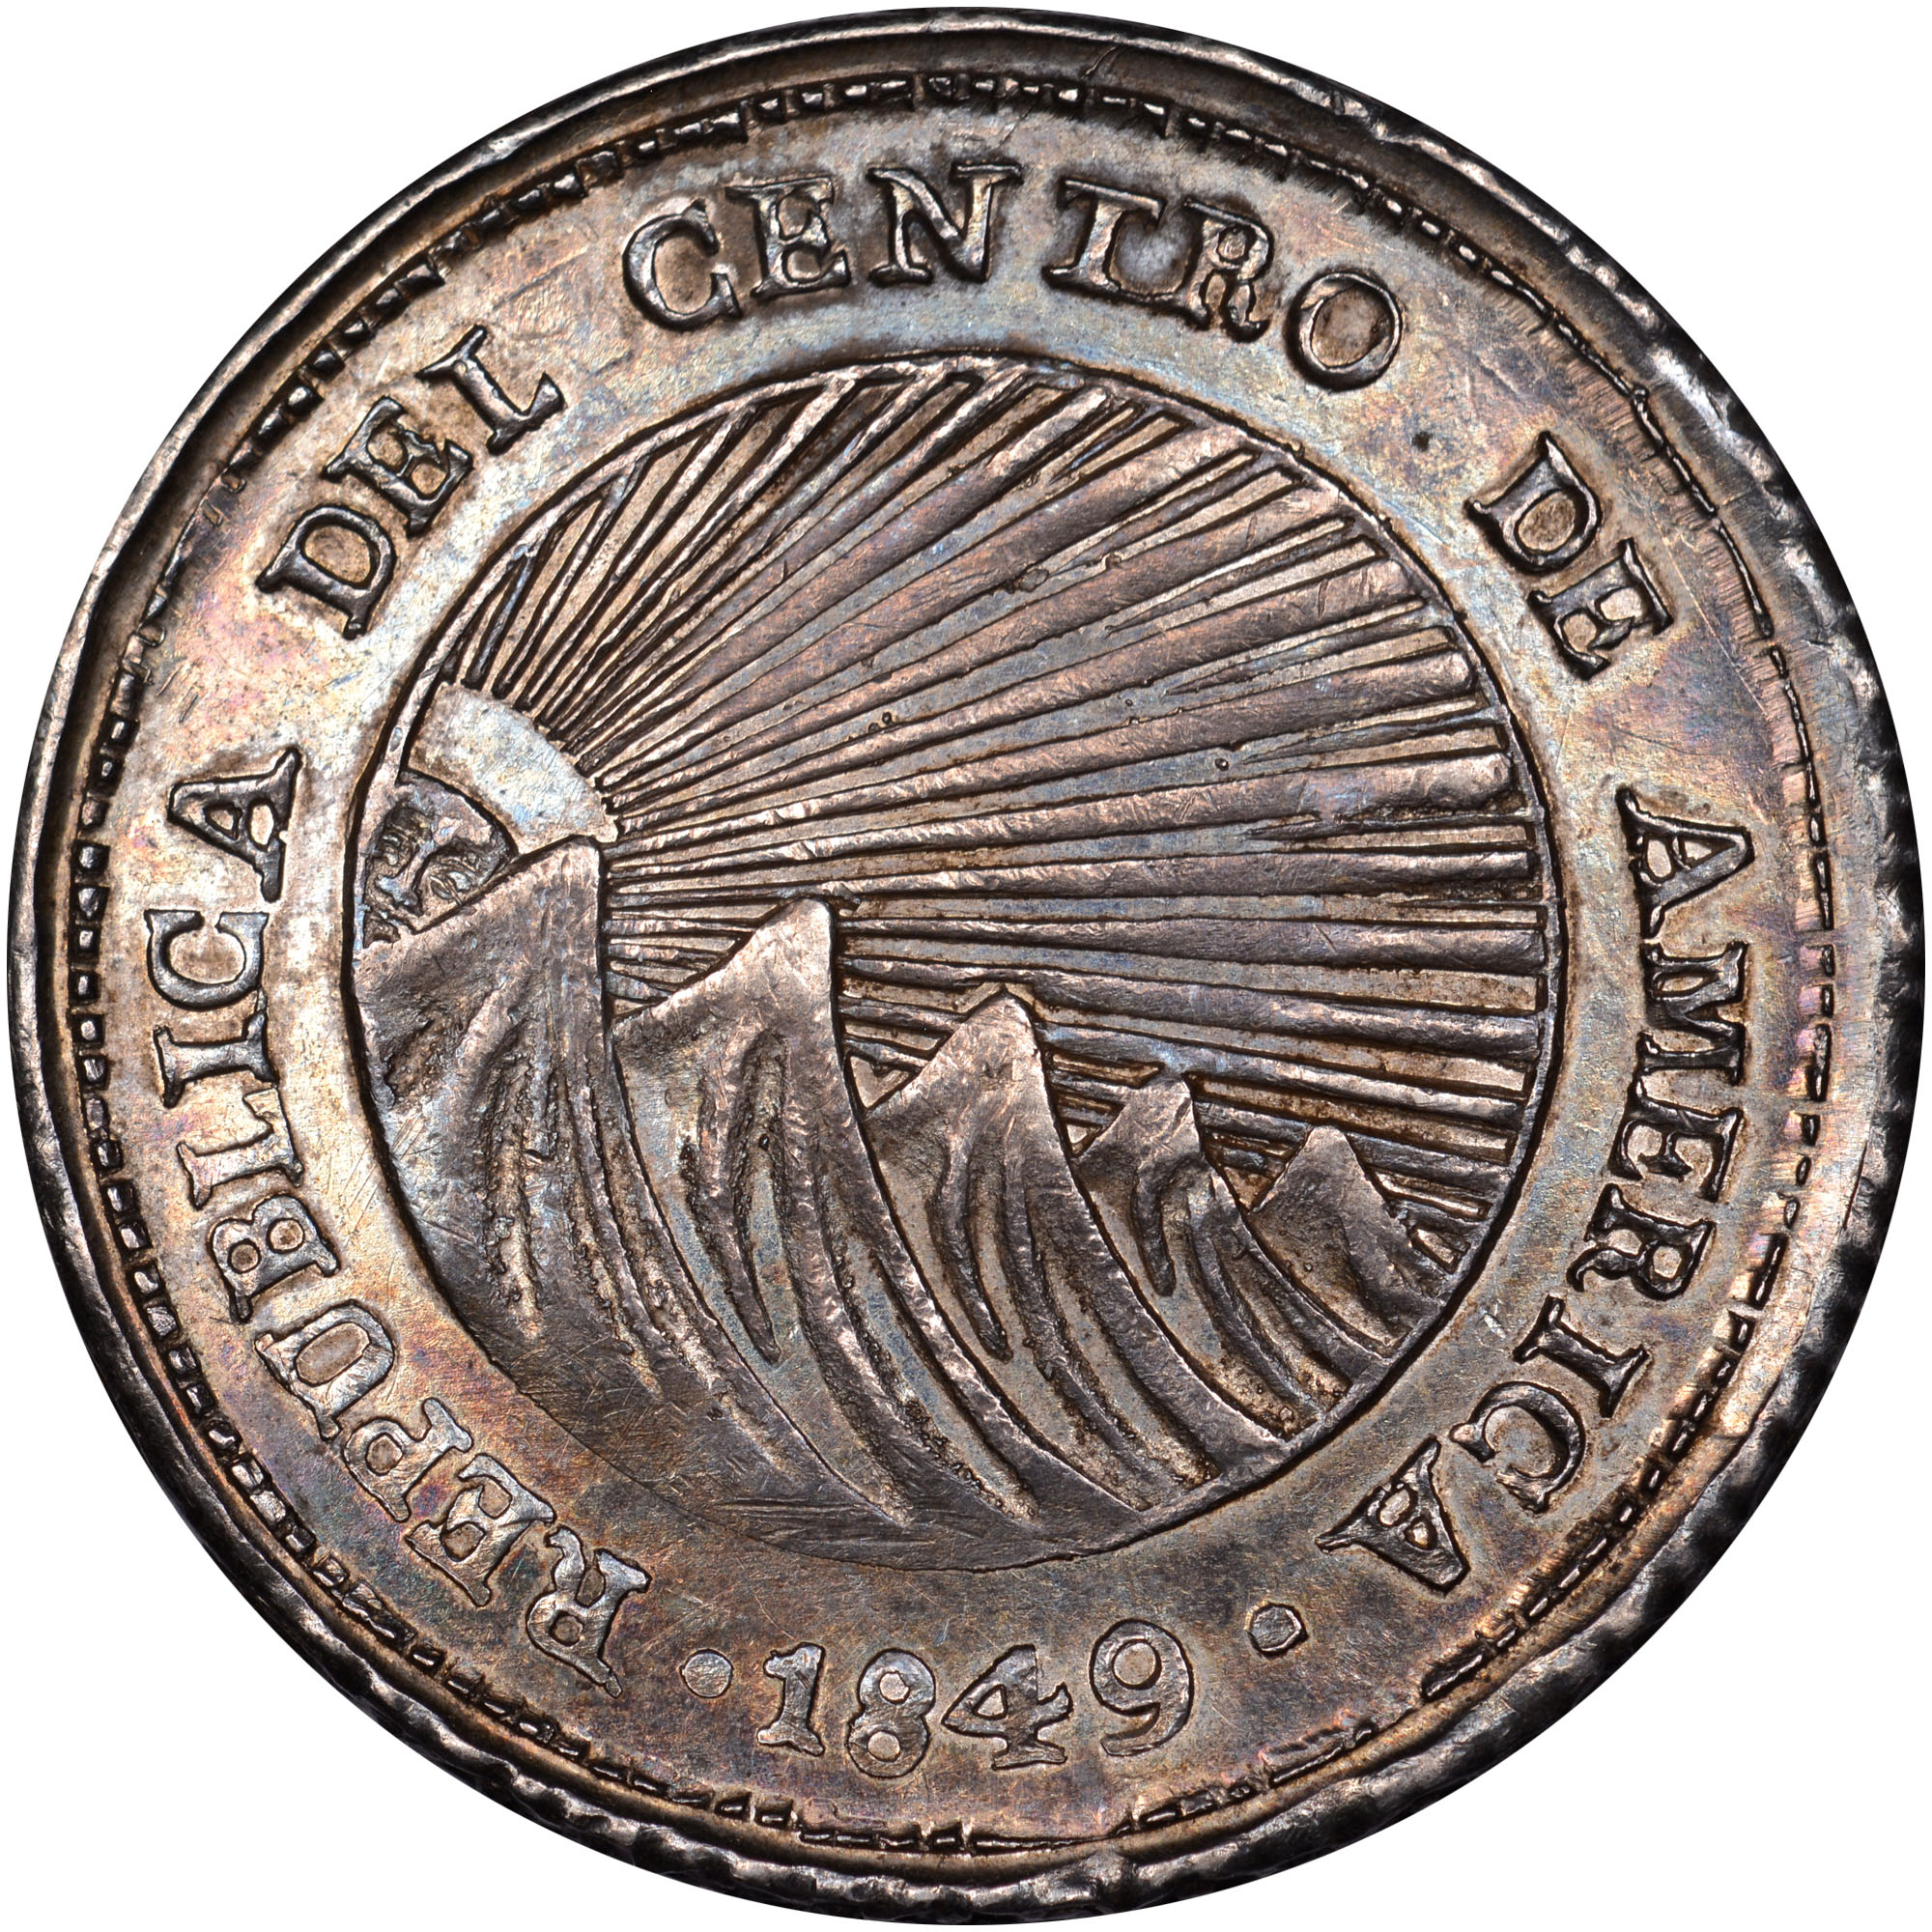 1849 Central American Republic 2 Reales obverse